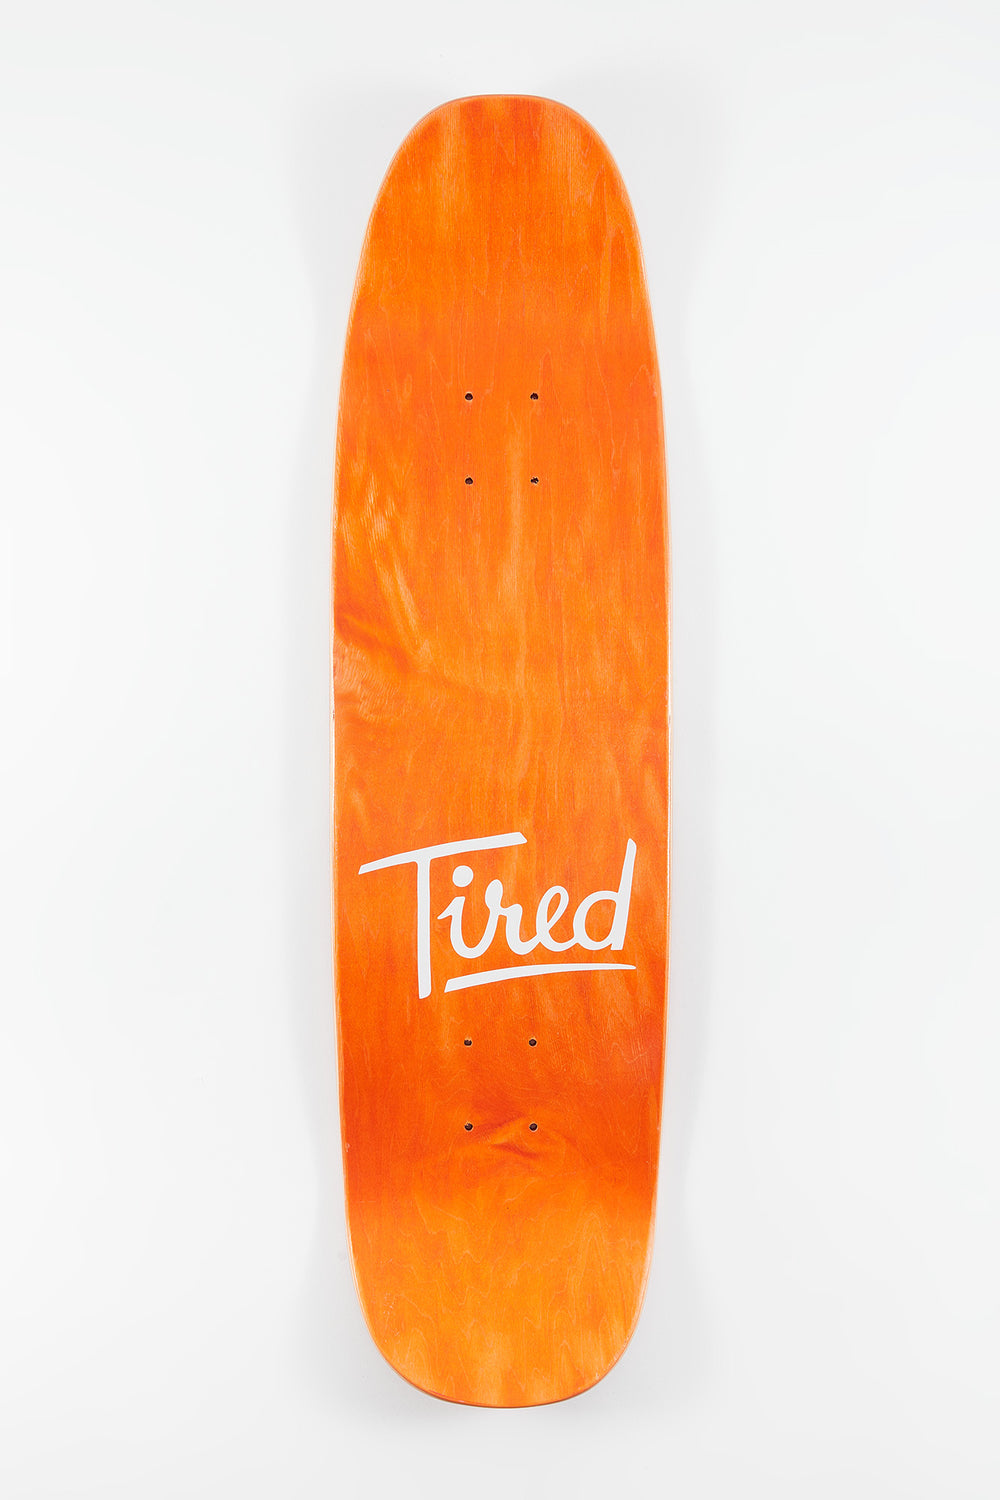 Tired Close Enough On Chuck Skateboard Deck 9